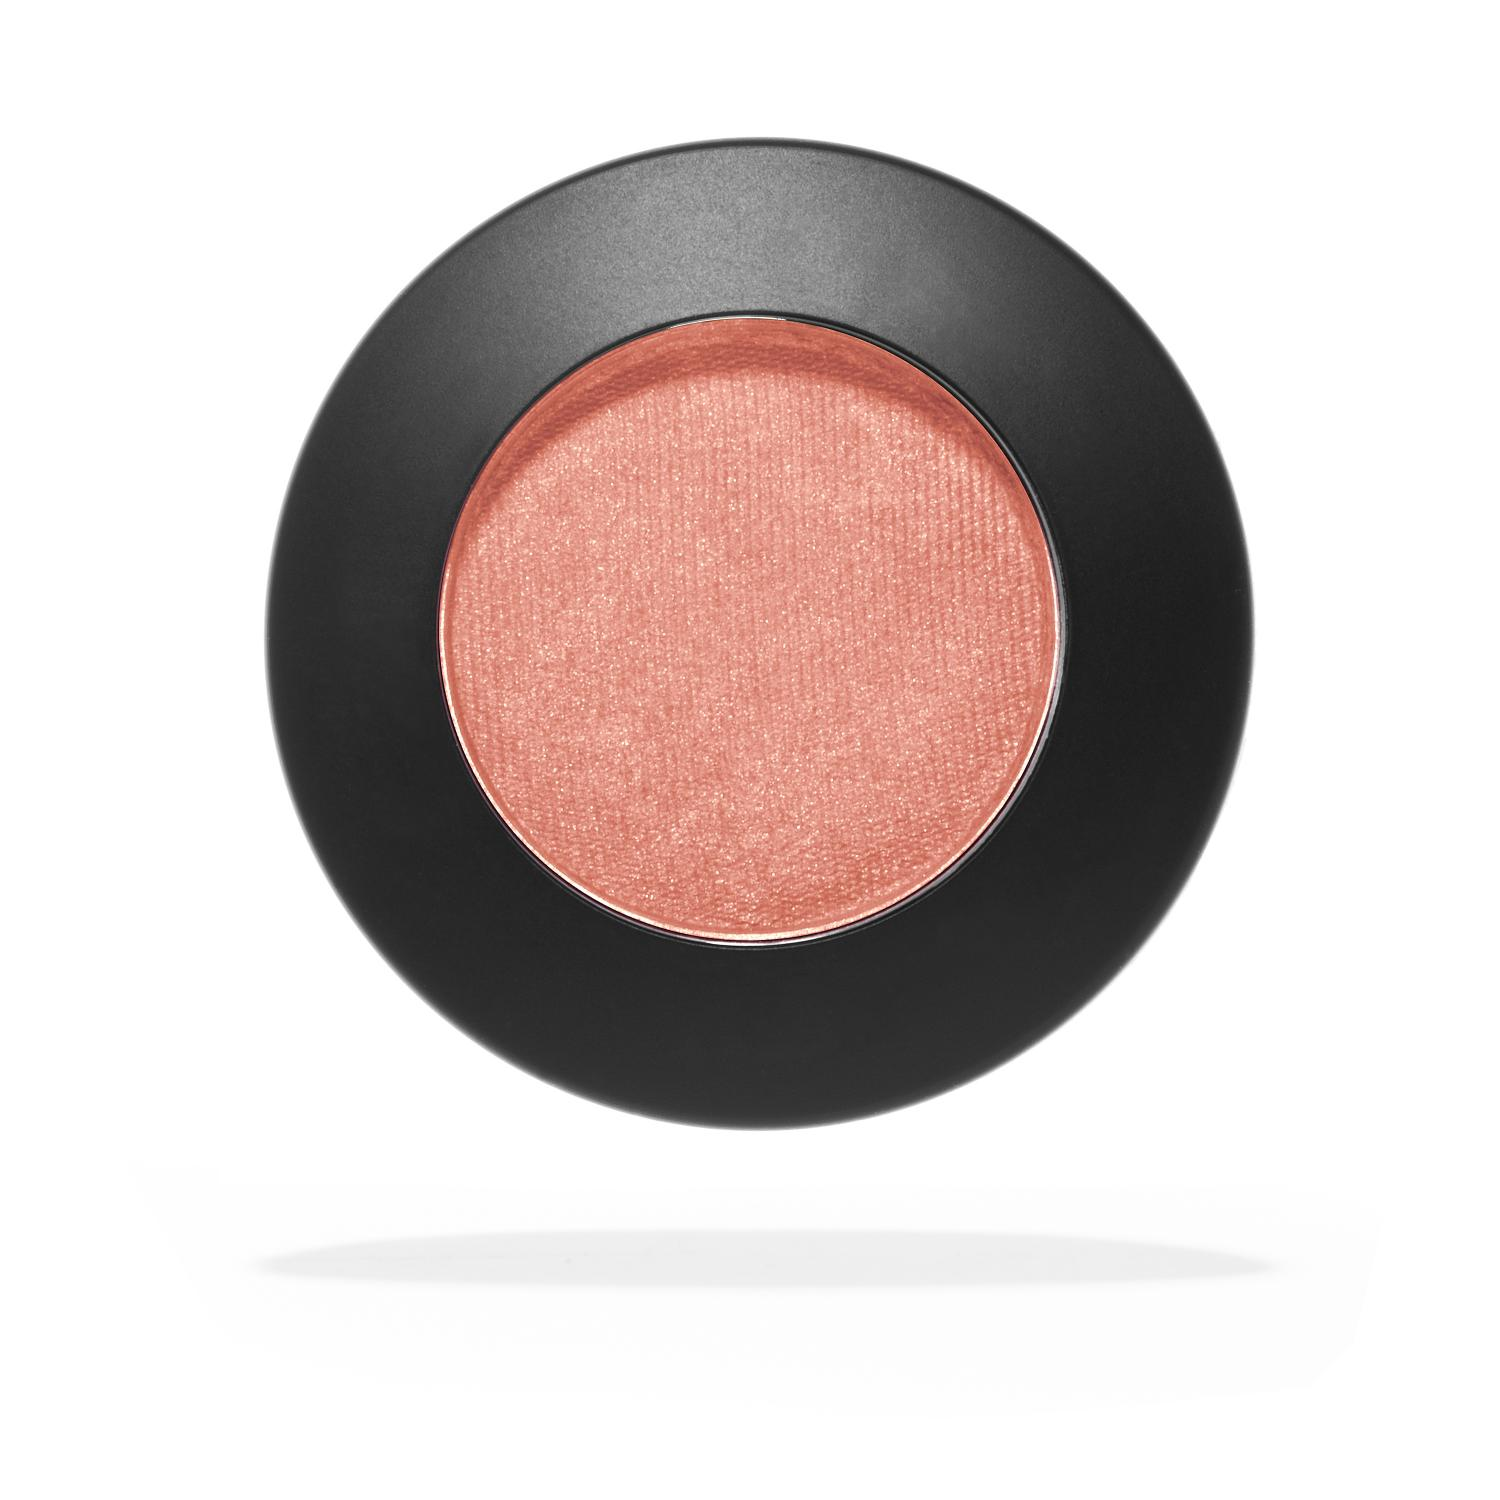 LILI - MICRONIZED EYE SHADOW